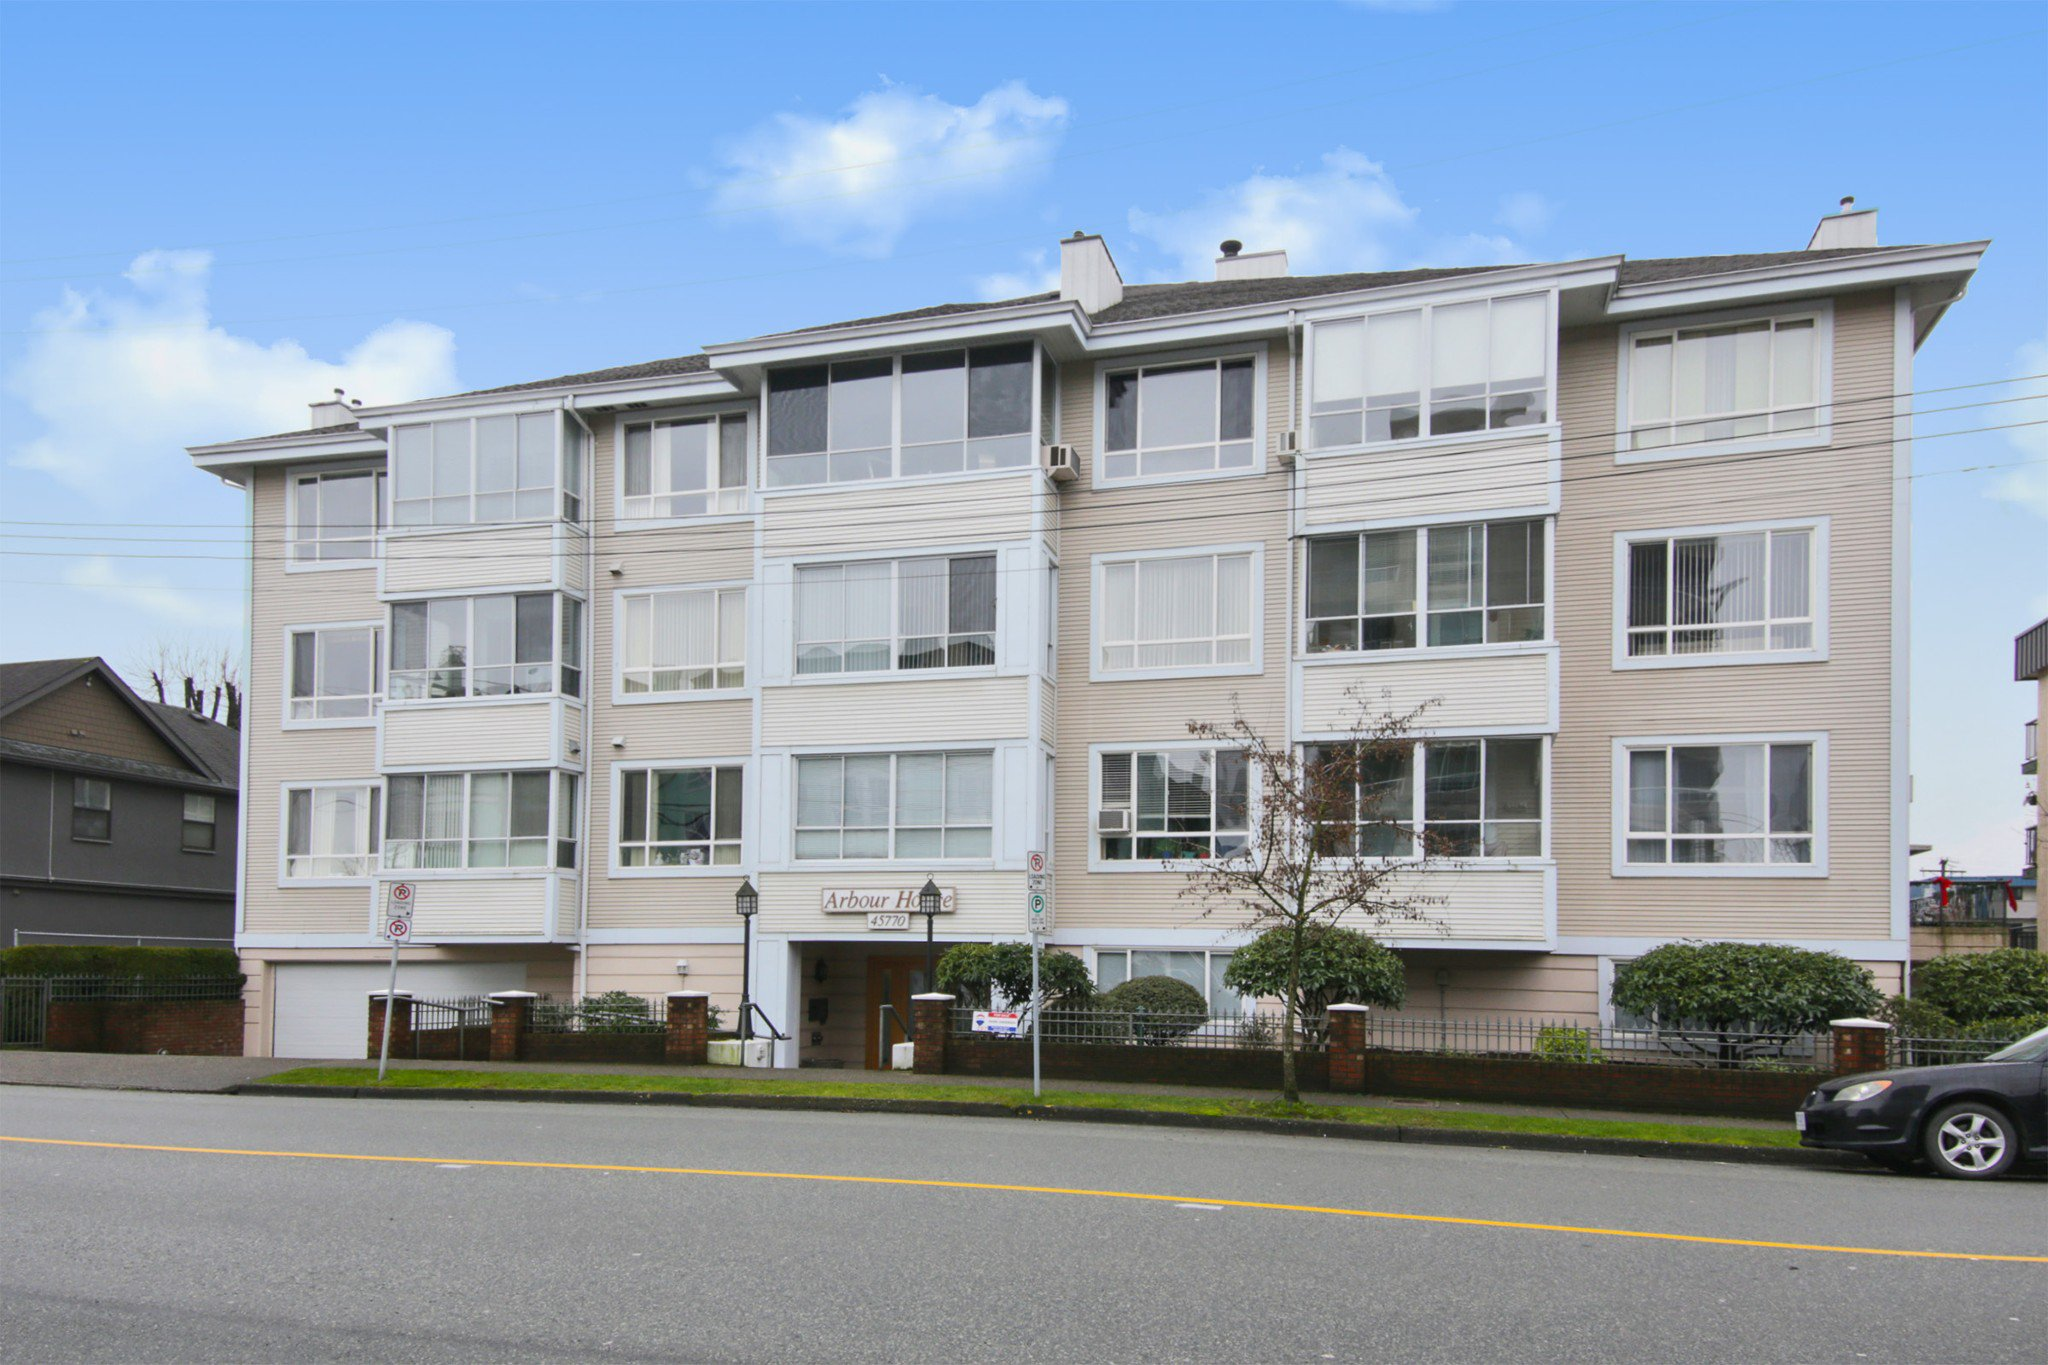 """Main Photo: 207 45770 SPADINA Avenue in Chilliwack: Chilliwack W Young-Well Condo for sale in """"Arbour House"""" : MLS®# R2526549"""